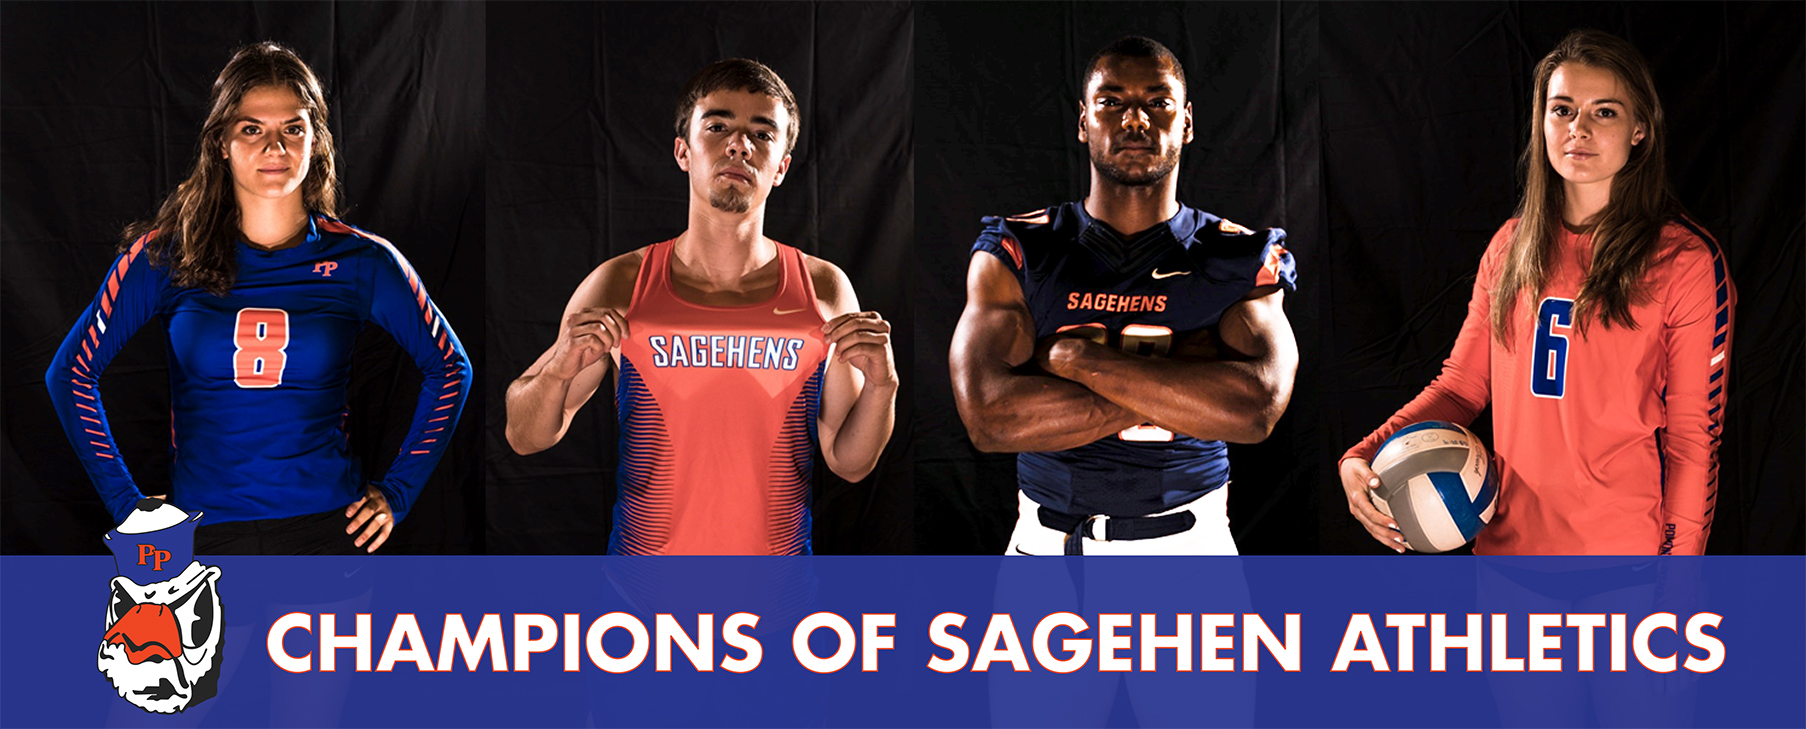 Champions of Sagehens Athletics